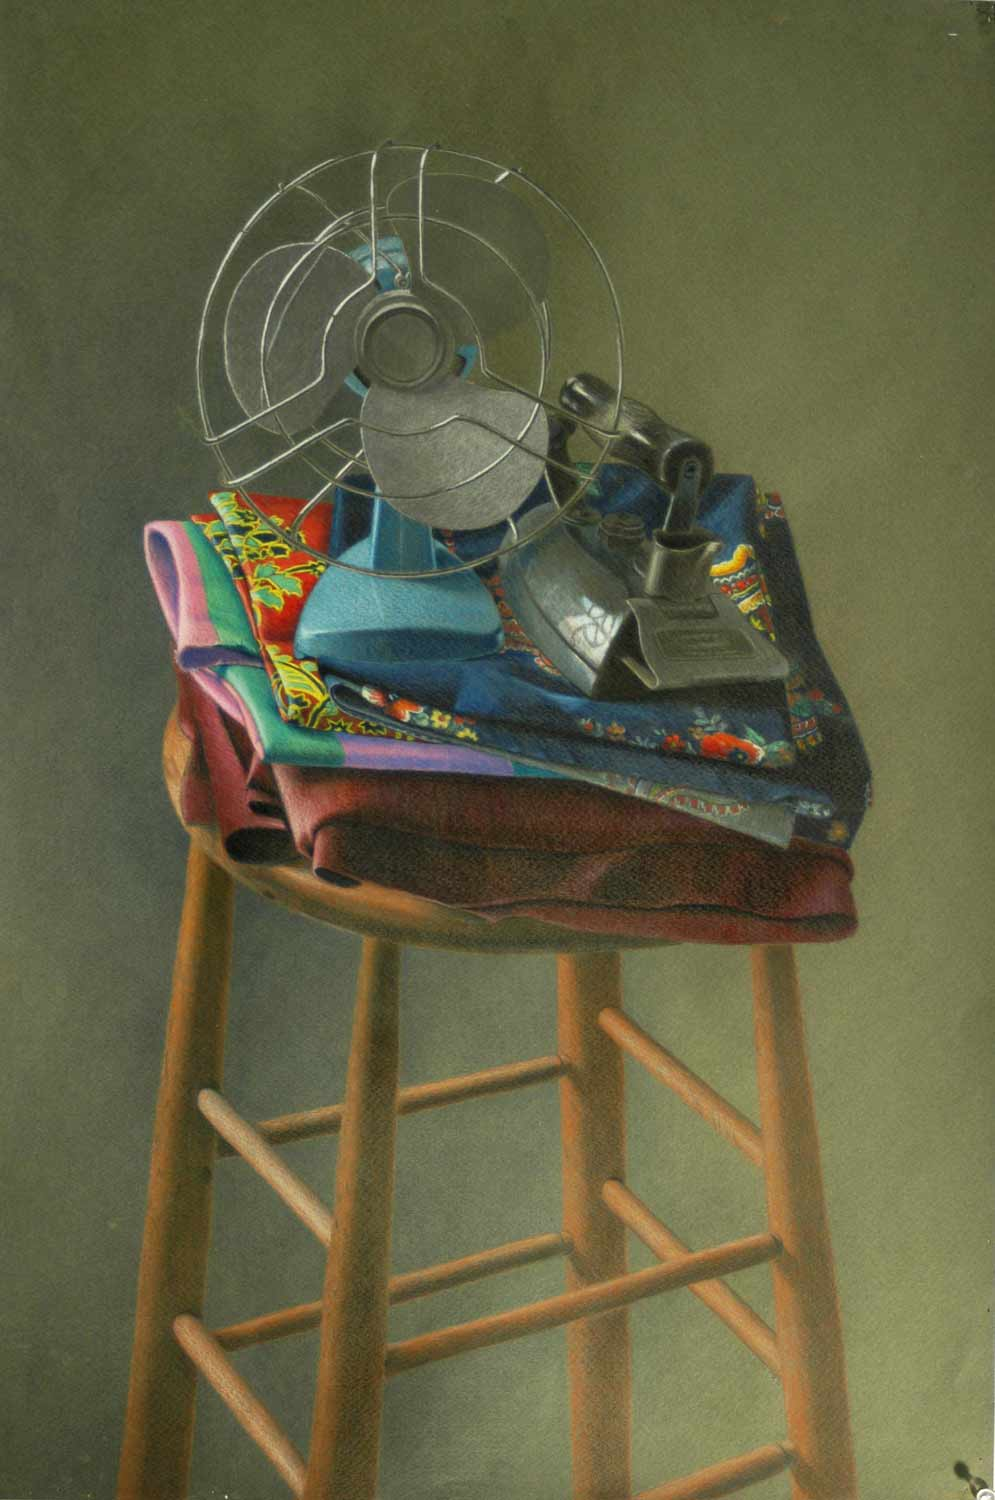 Fan & Iron, 31 x 21 in., Color pencil on paper